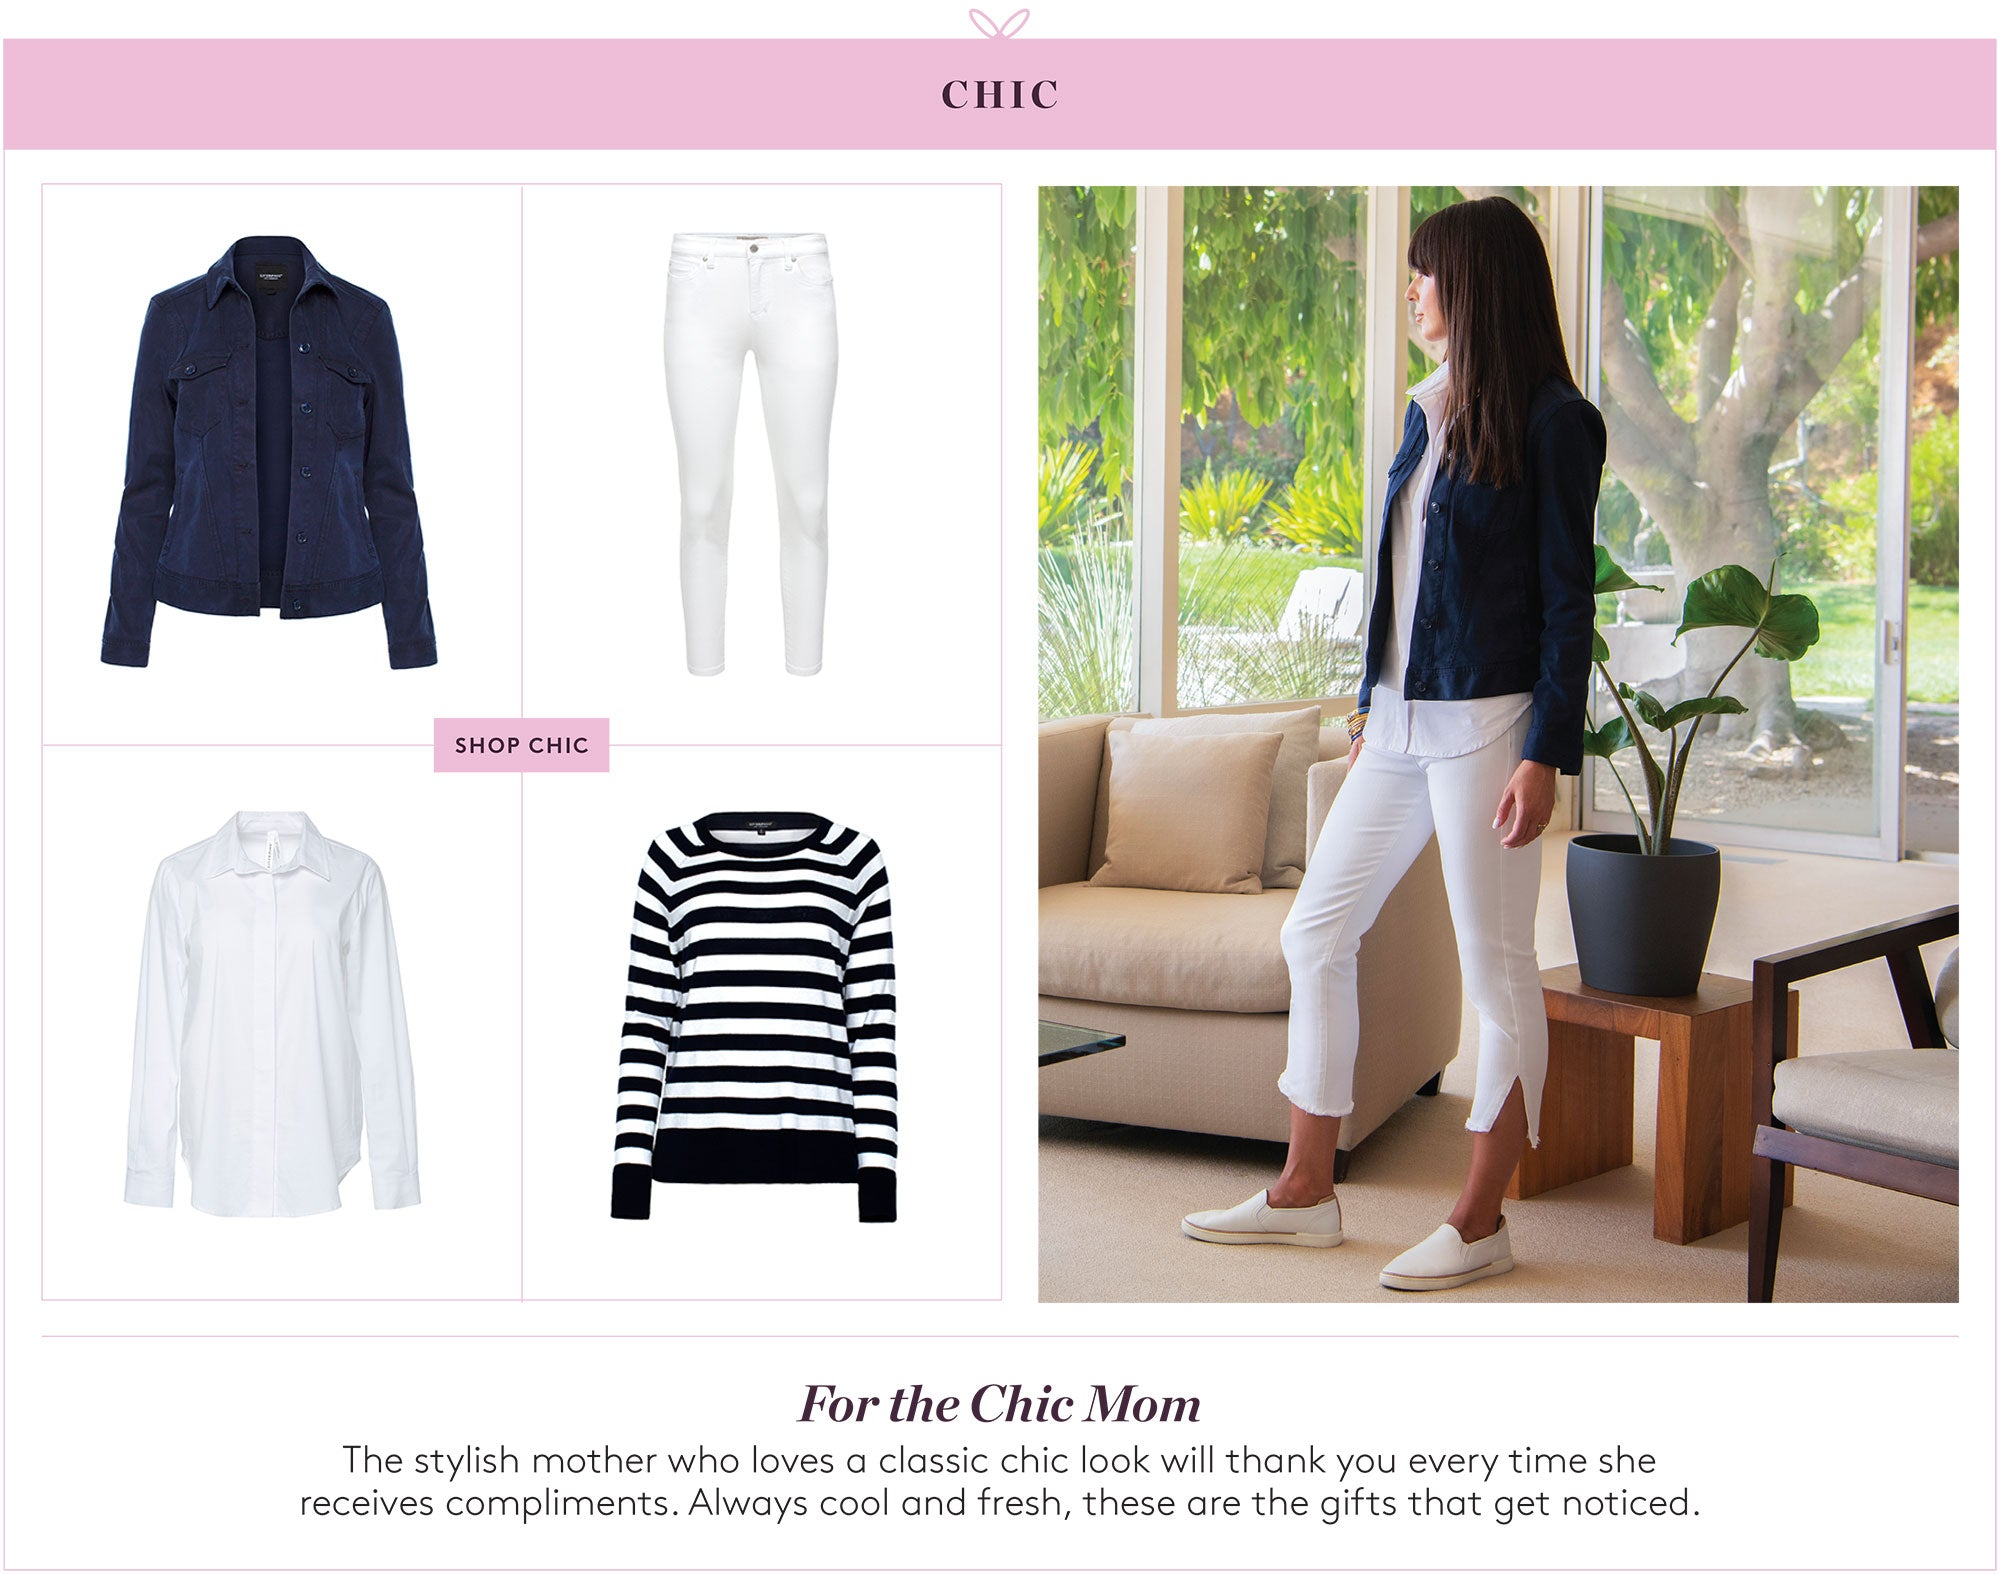 For the Chic Mom: The Stylish mother who loves a classic chic look will thank you every time she receives compliments.  Always cool and fresh, these are the gifts that get noticed.